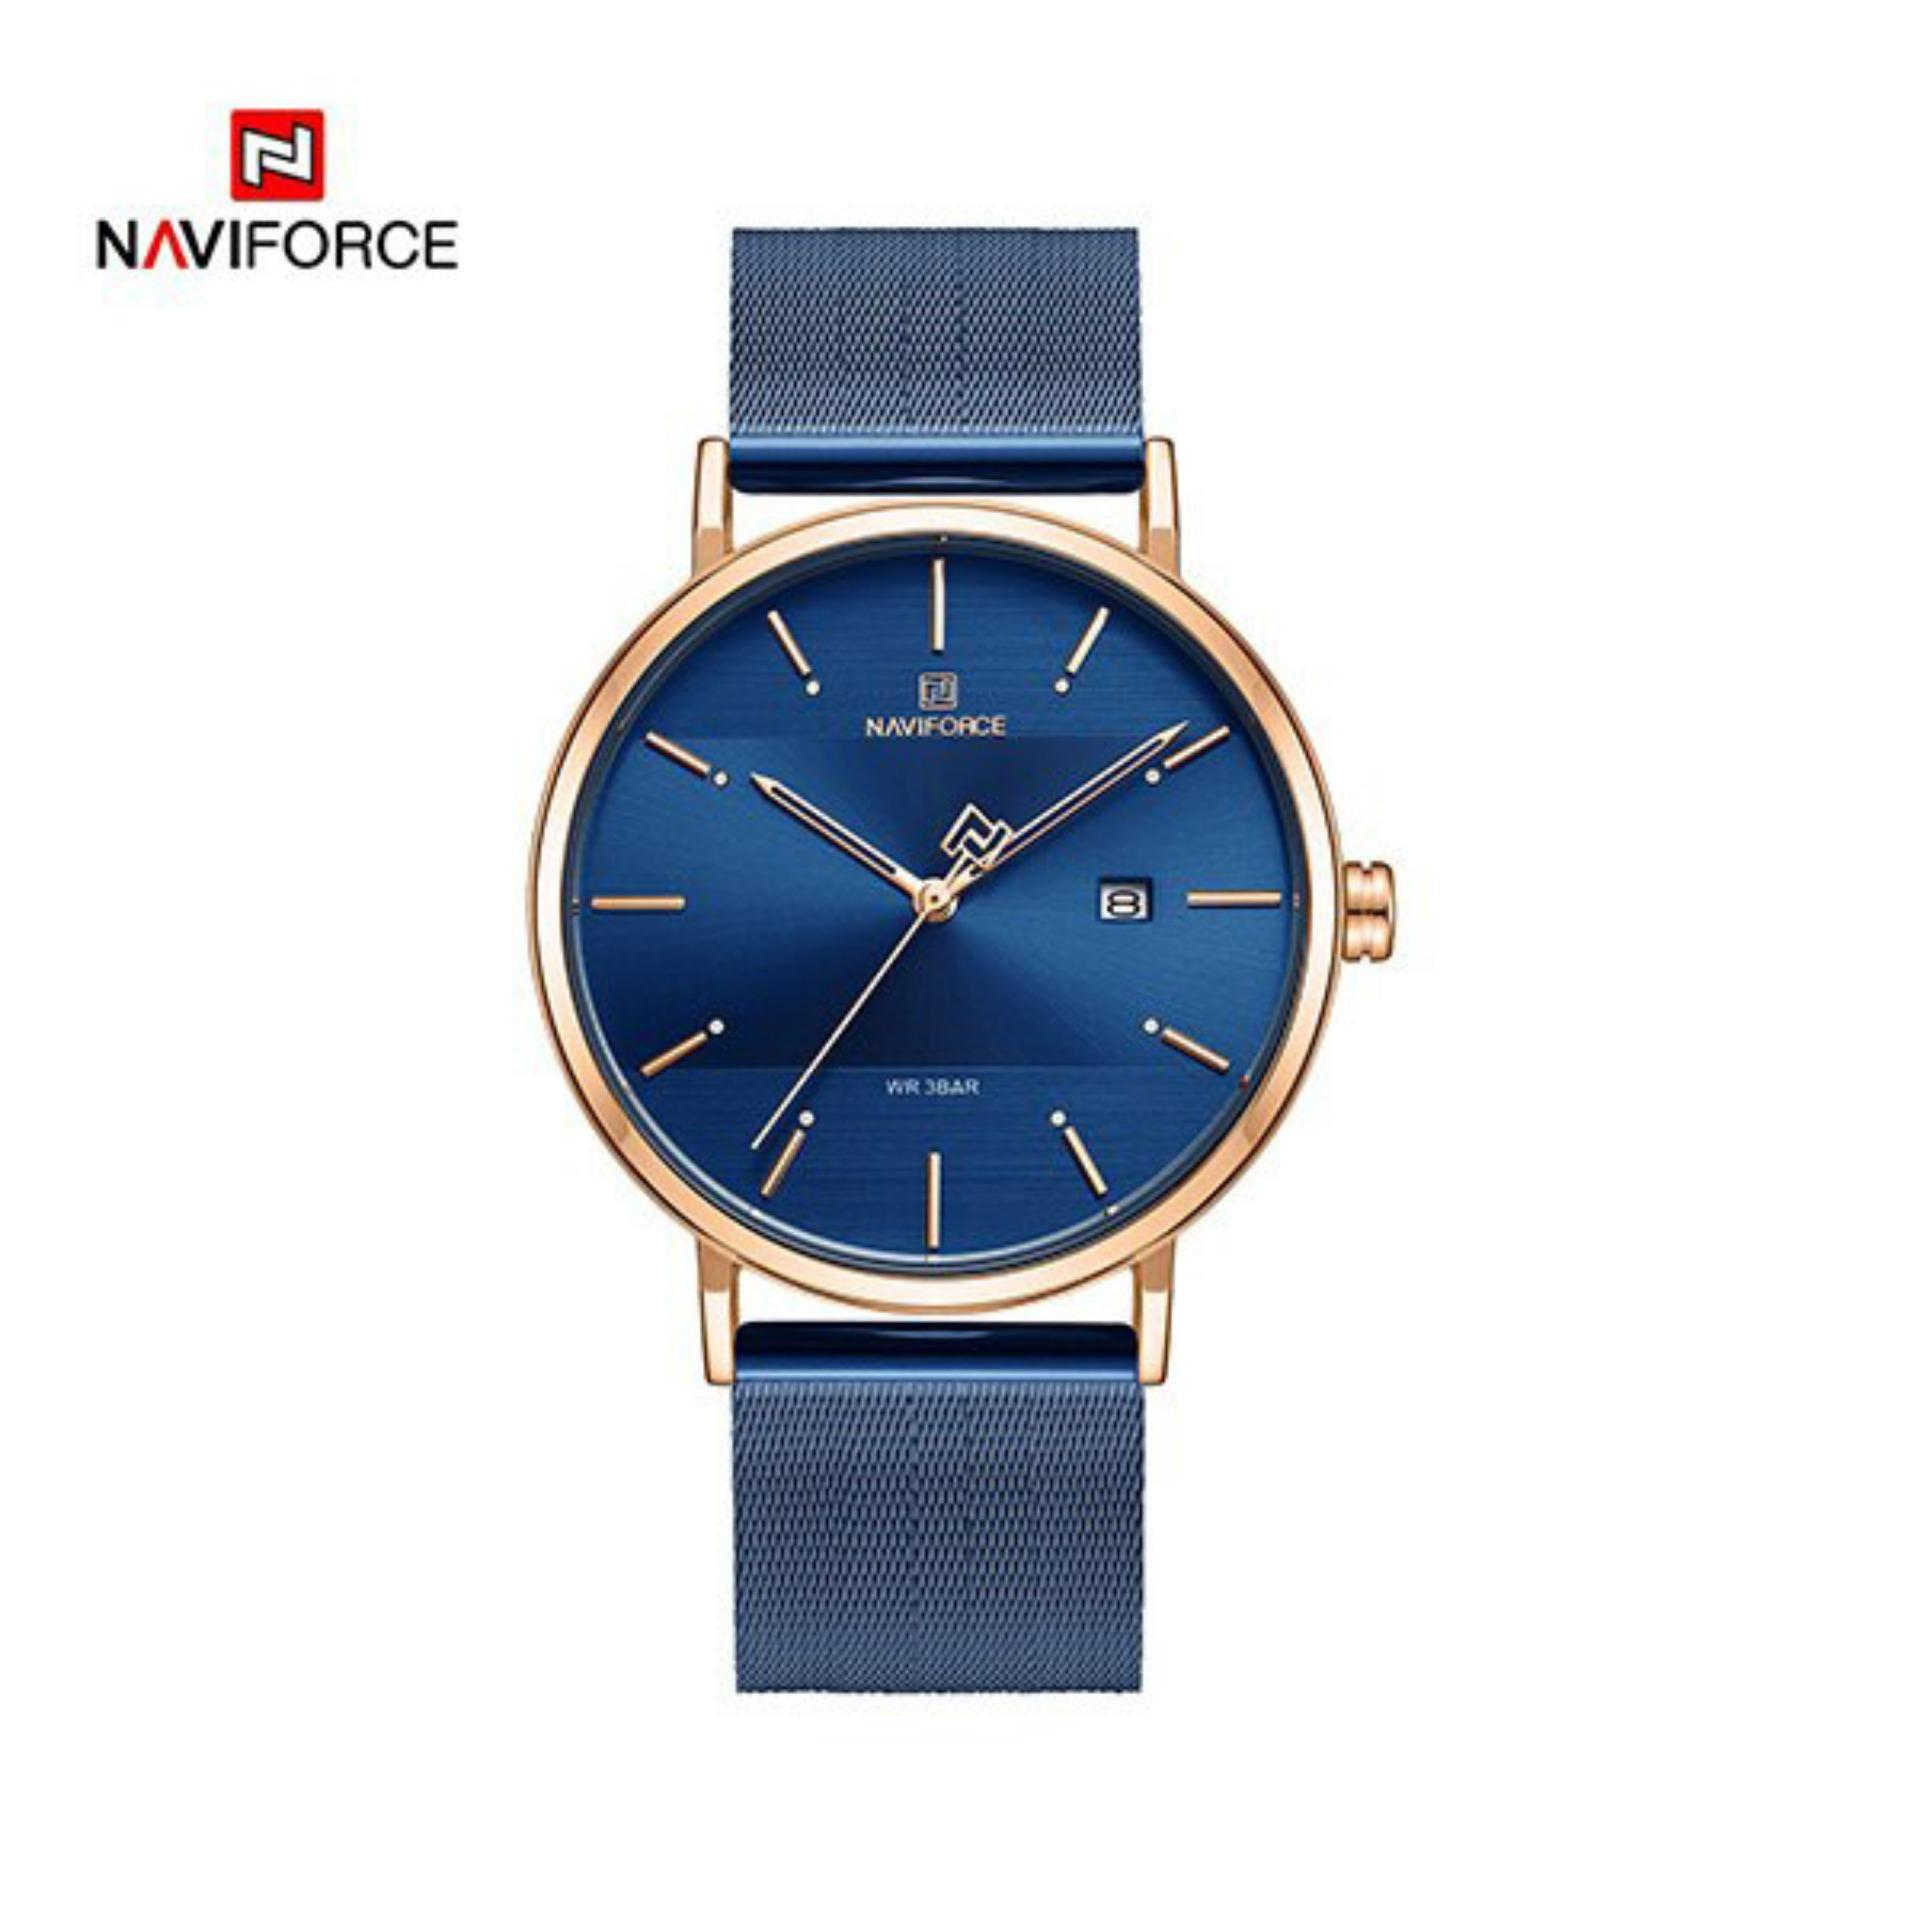 NAVIFORCE NF3008L Royal Blue Mesh Stainless Steel Analog Watch For Women - RoseGold & Royal Blue